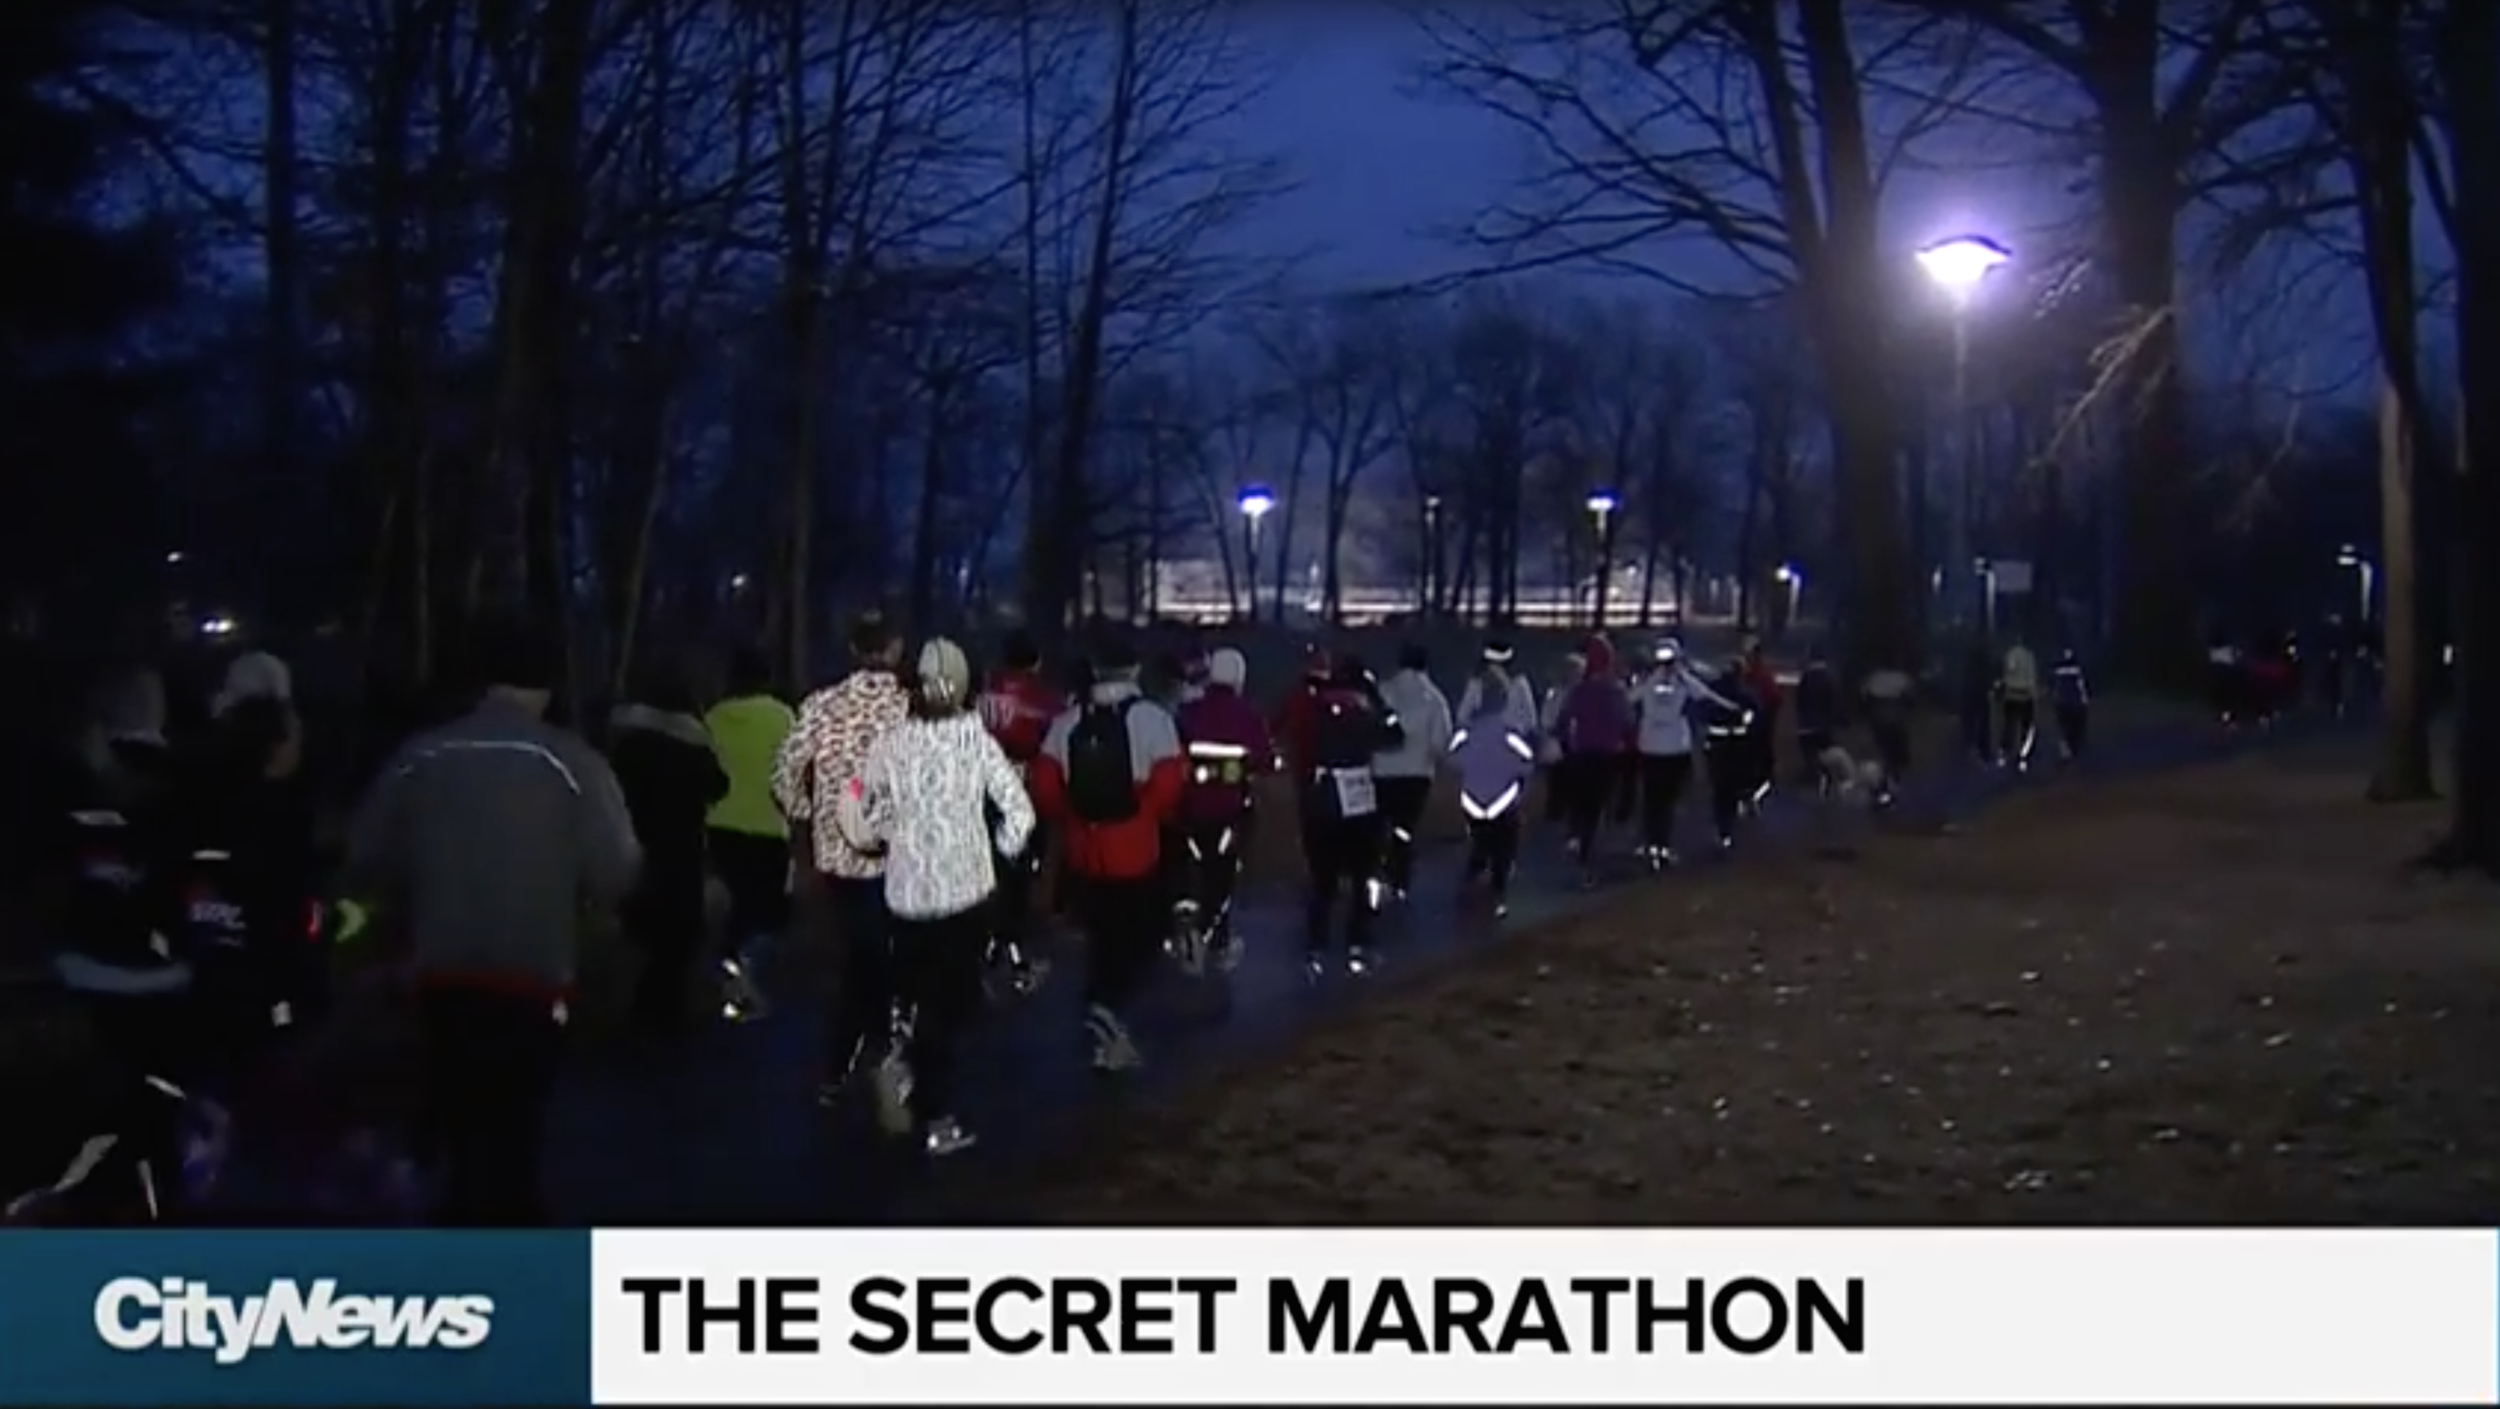 City News TV Toronto The Secret Marathon 3K 2018